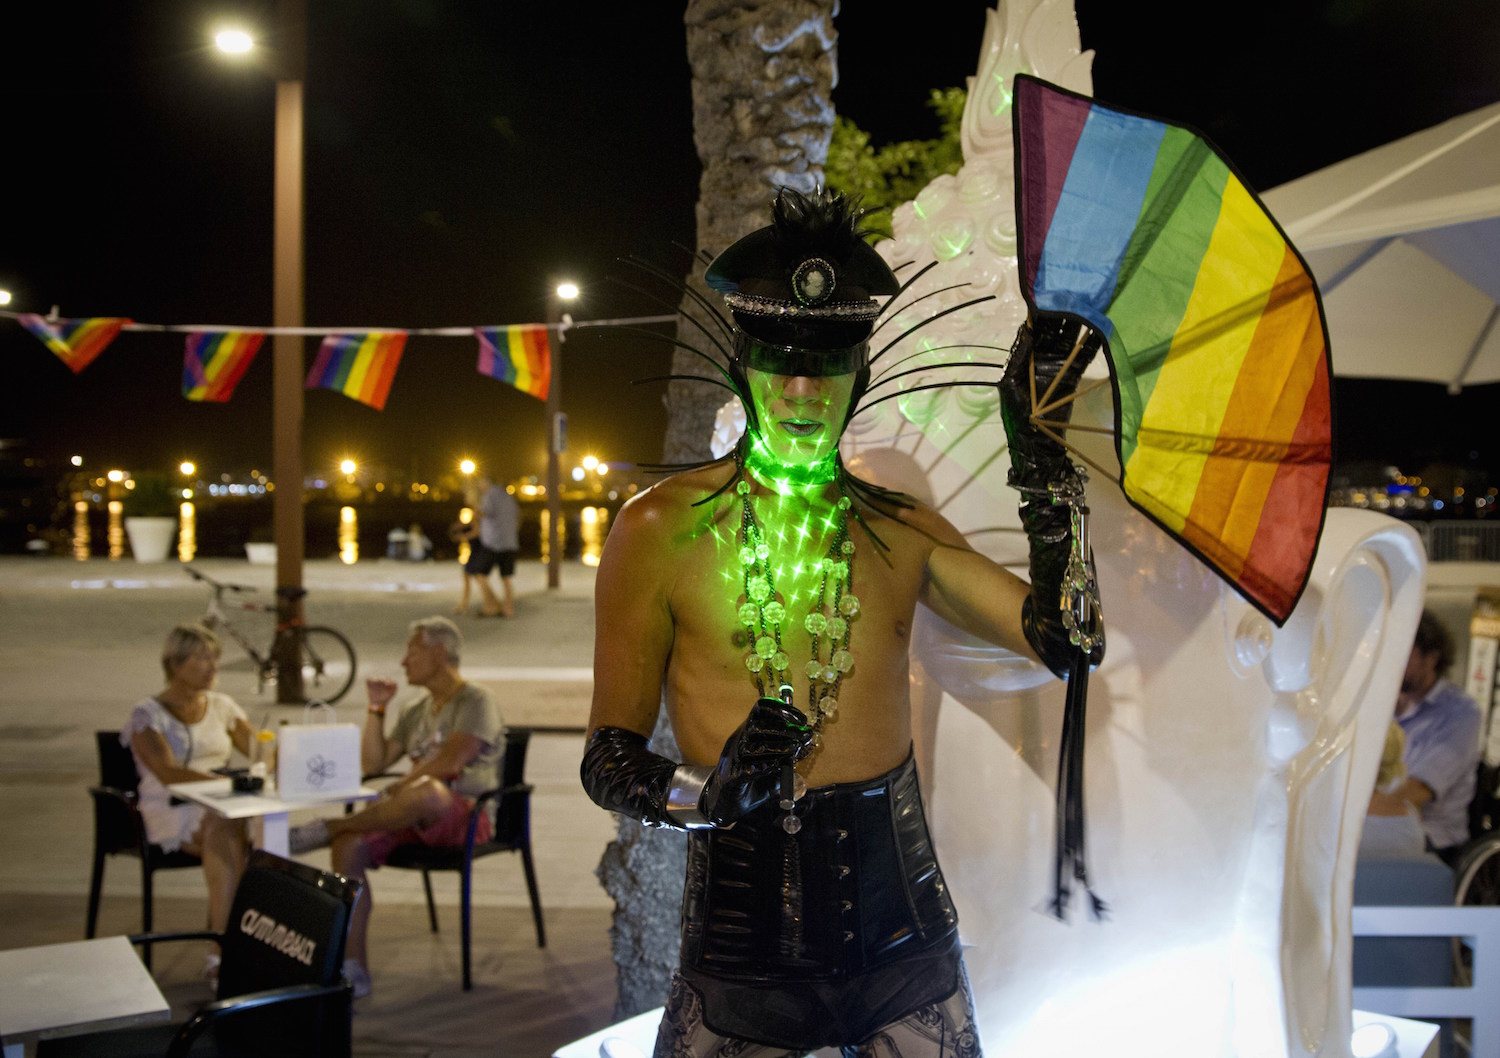 A drag queen poses in a tourist street in the city of Ibiza on July 9, 2015. AFP PHOTO / JAIME REINA        (Photo credit should read JAIME REINA/AFP/Getty Images)